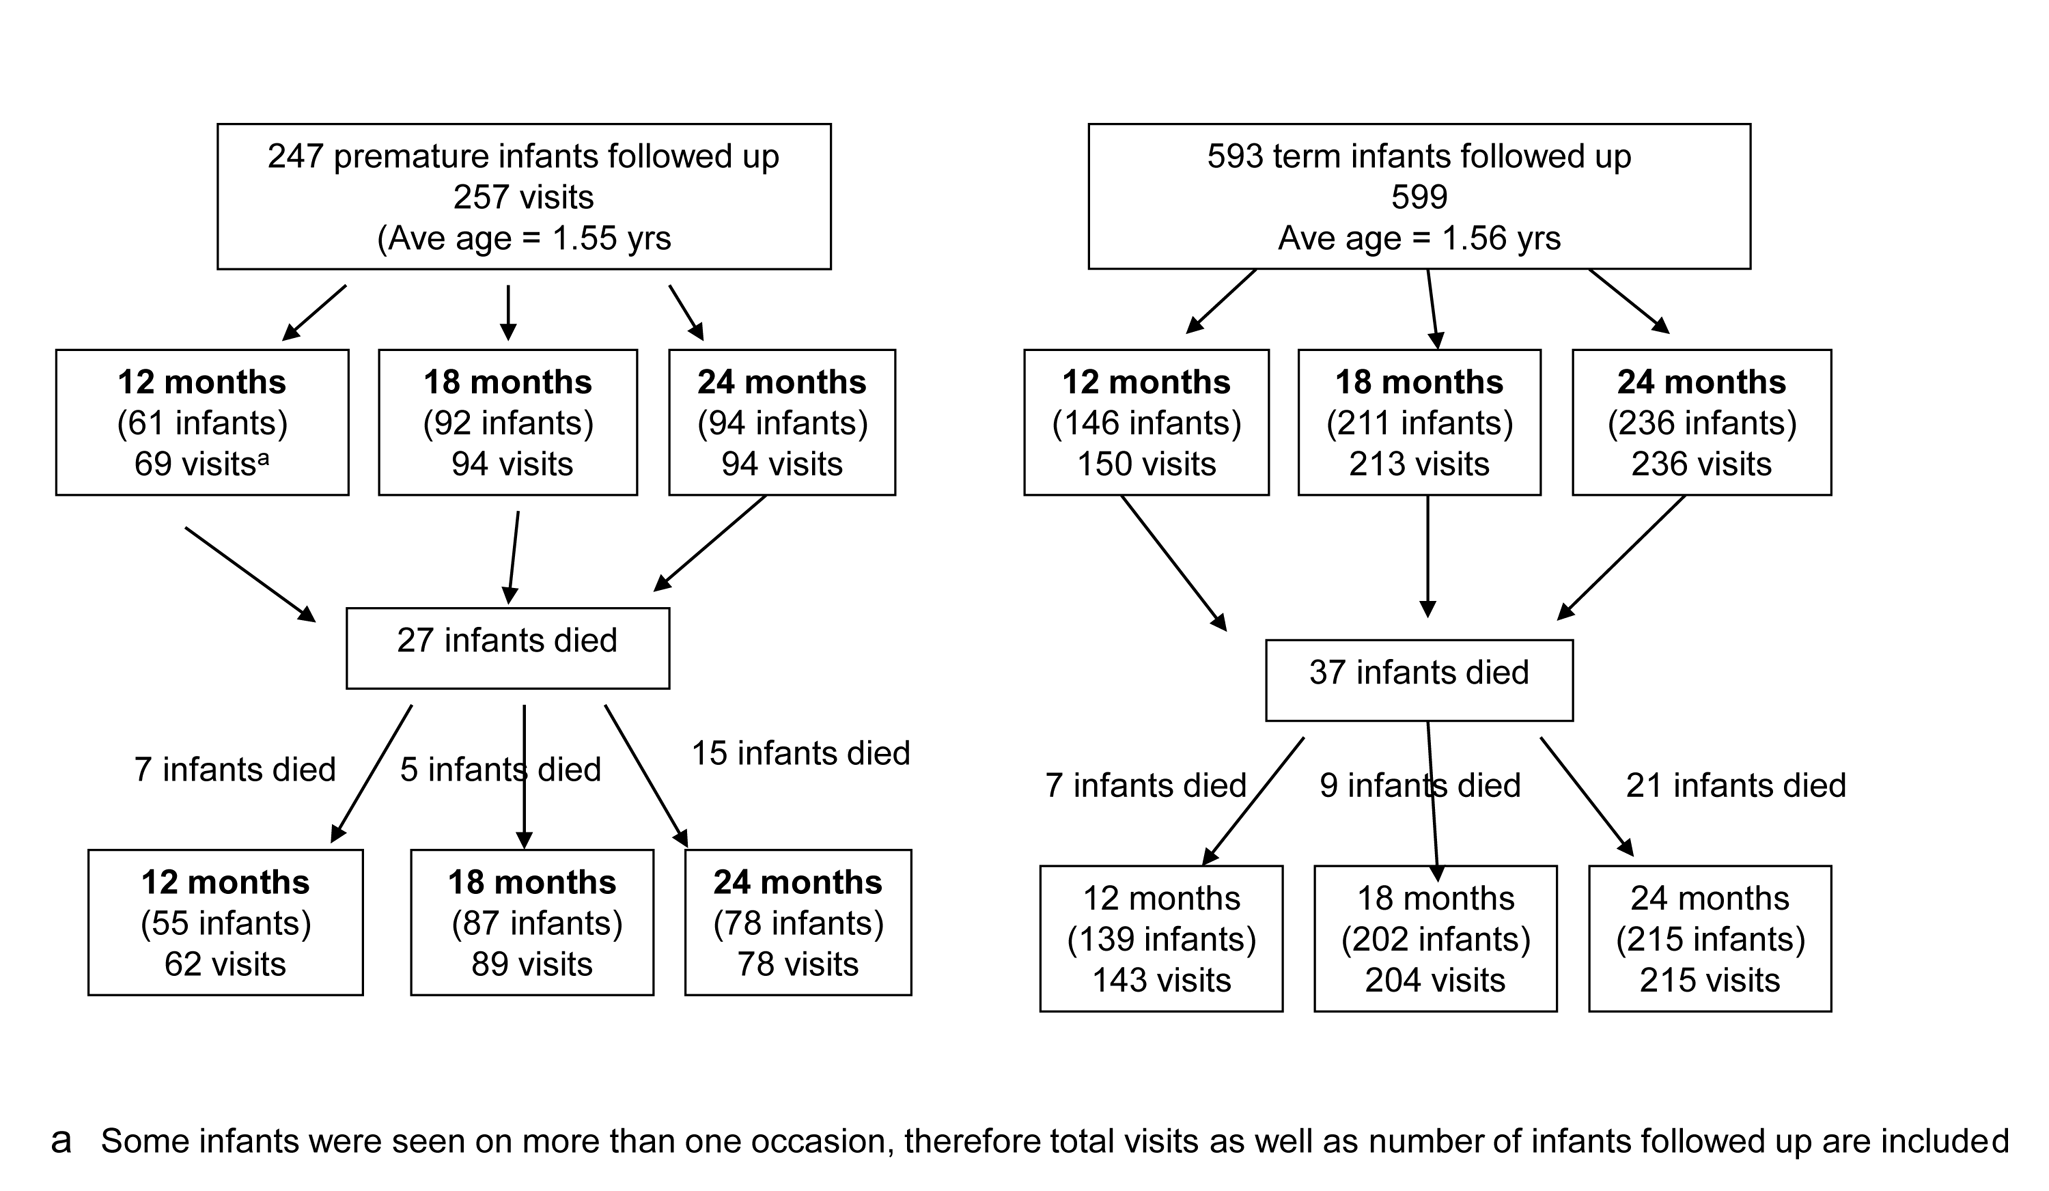 Flow chart of post-neonatal infants followed up in community cohort study.